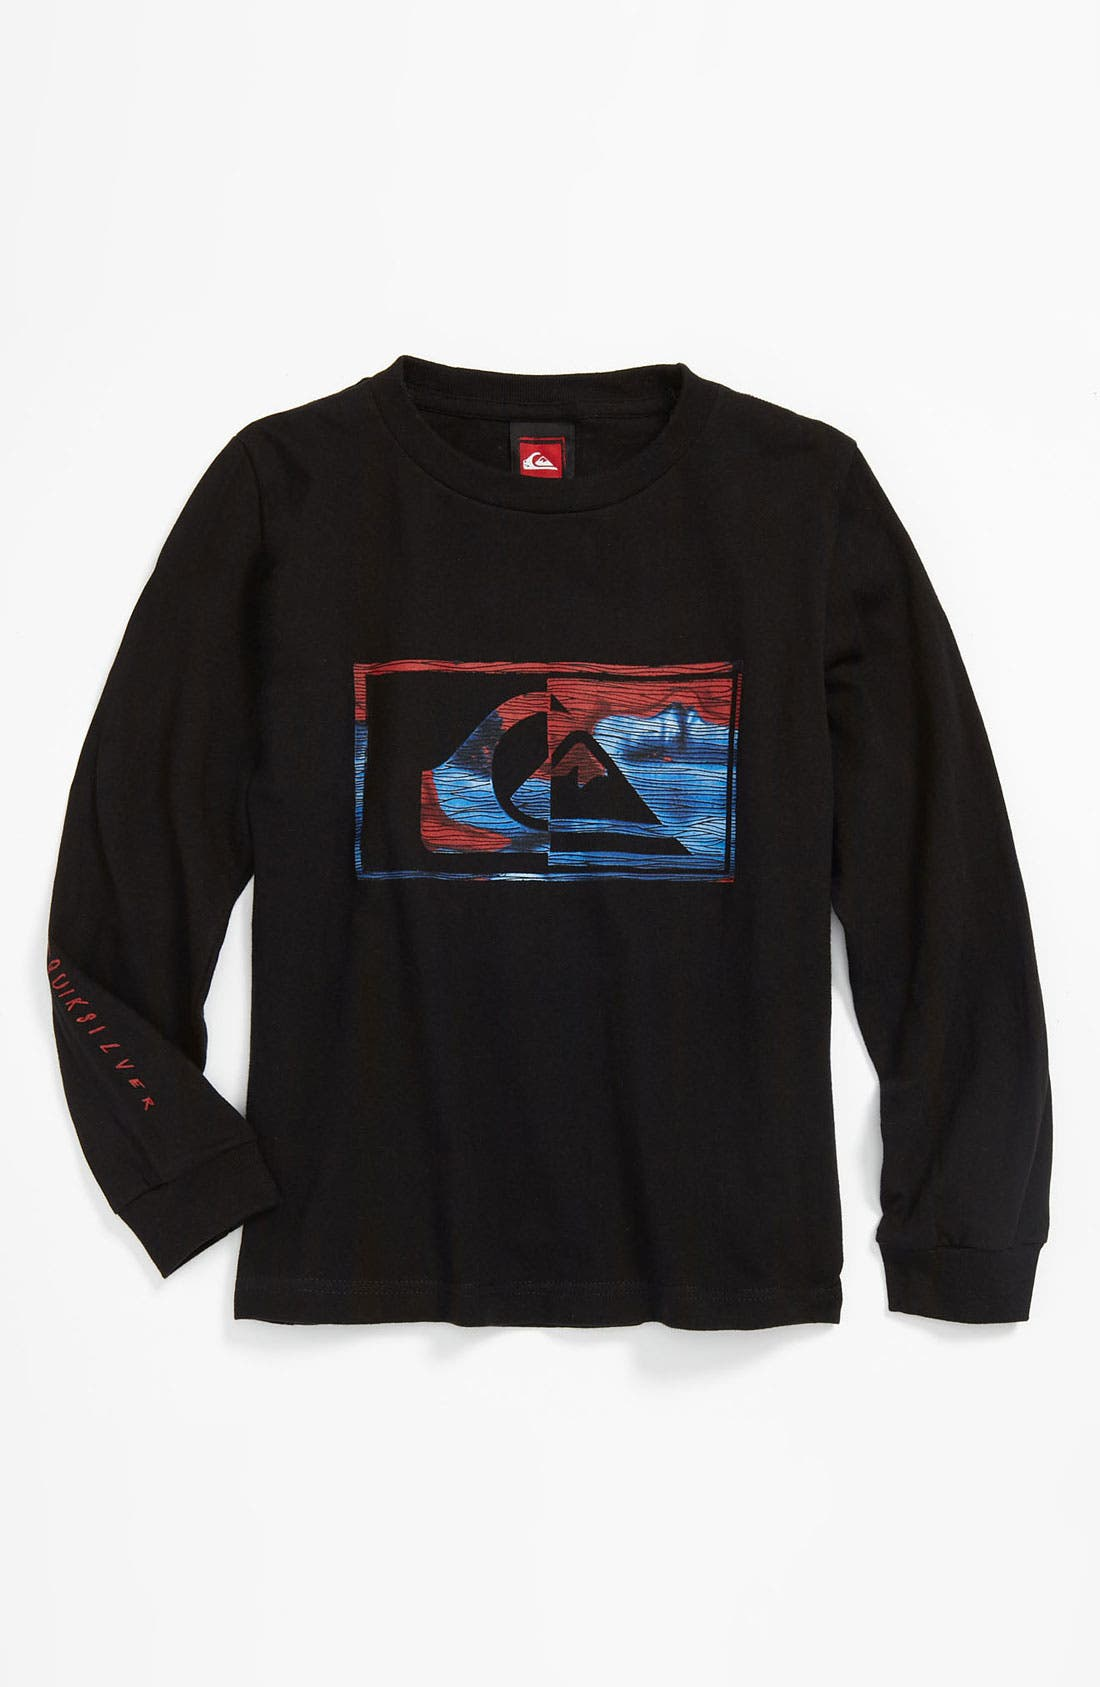 Alternate Image 1 Selected - Quiksilver 'Speak Easy' T-Shirt (Little Boys)